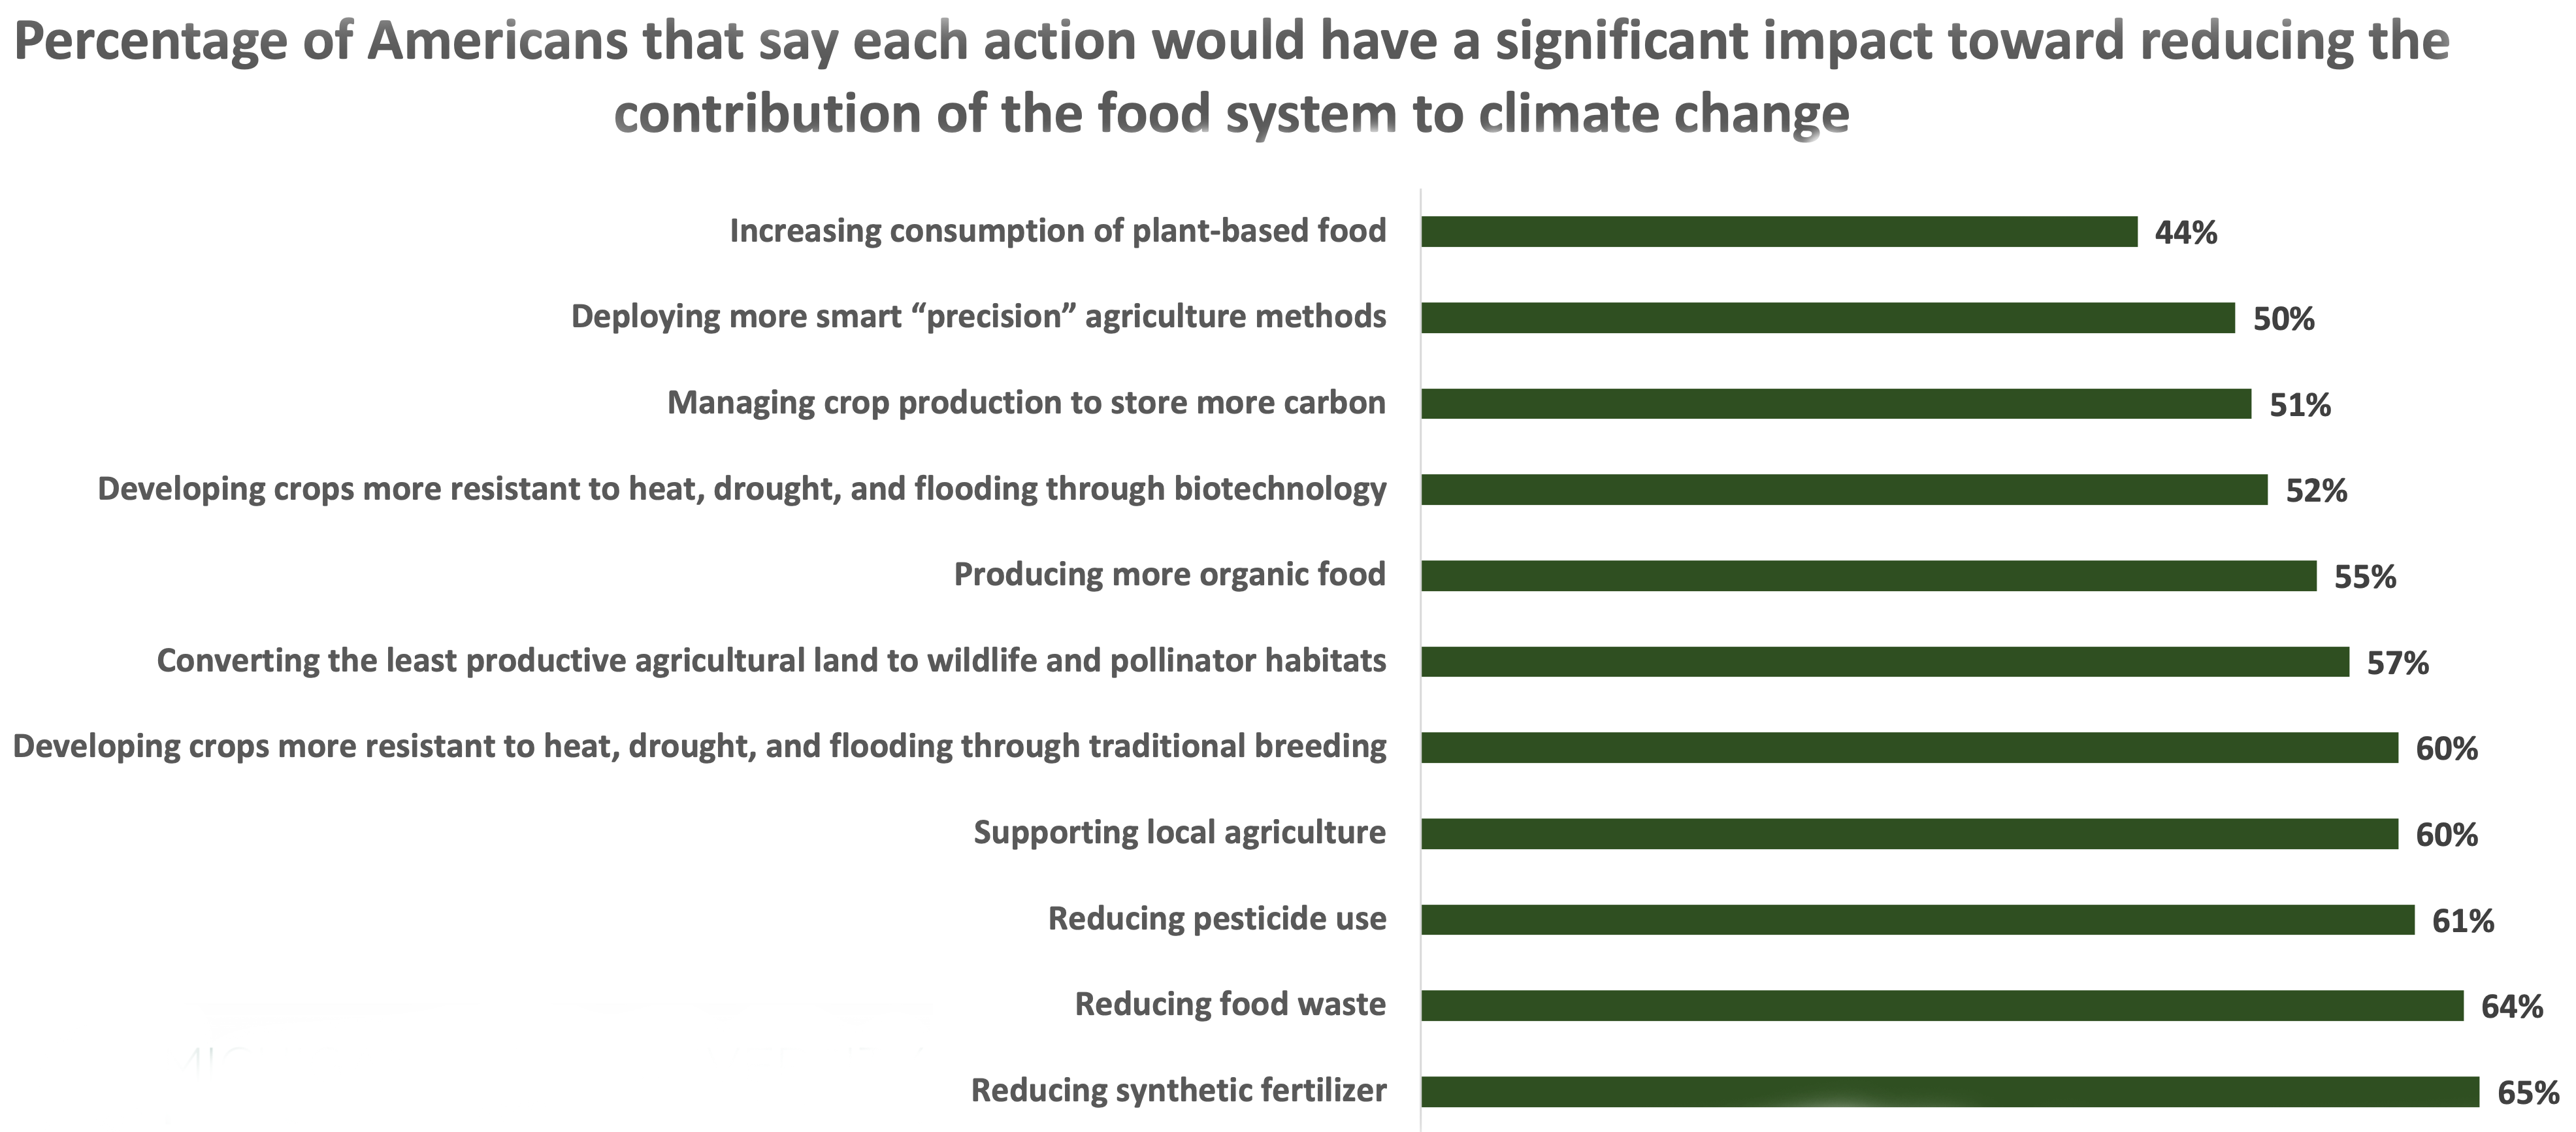 This chart shows the percentage of Americans who say each action would have a significant impact toward reducing the food systems' contribution to climate change. 65% said reducing synthetic fertilizer. 64% said reducing food waste. 61% said reducing pesticide use. 60% said supporting local agriculture. 60% said develop crops resistant to heat, drought and flooding through traditional breeding. 57% said converting the least productive agricultural land to wildlife and pollinator habitats. 55% said producing more organic food. 52% said developing more crops resistant to heat, drought and flooding through biotechnology. 51% said managing crop production to store more carbon. 50% said deploying more precision agriculture methods. Lastly, 44% said increasing consumption of plant-based foods.